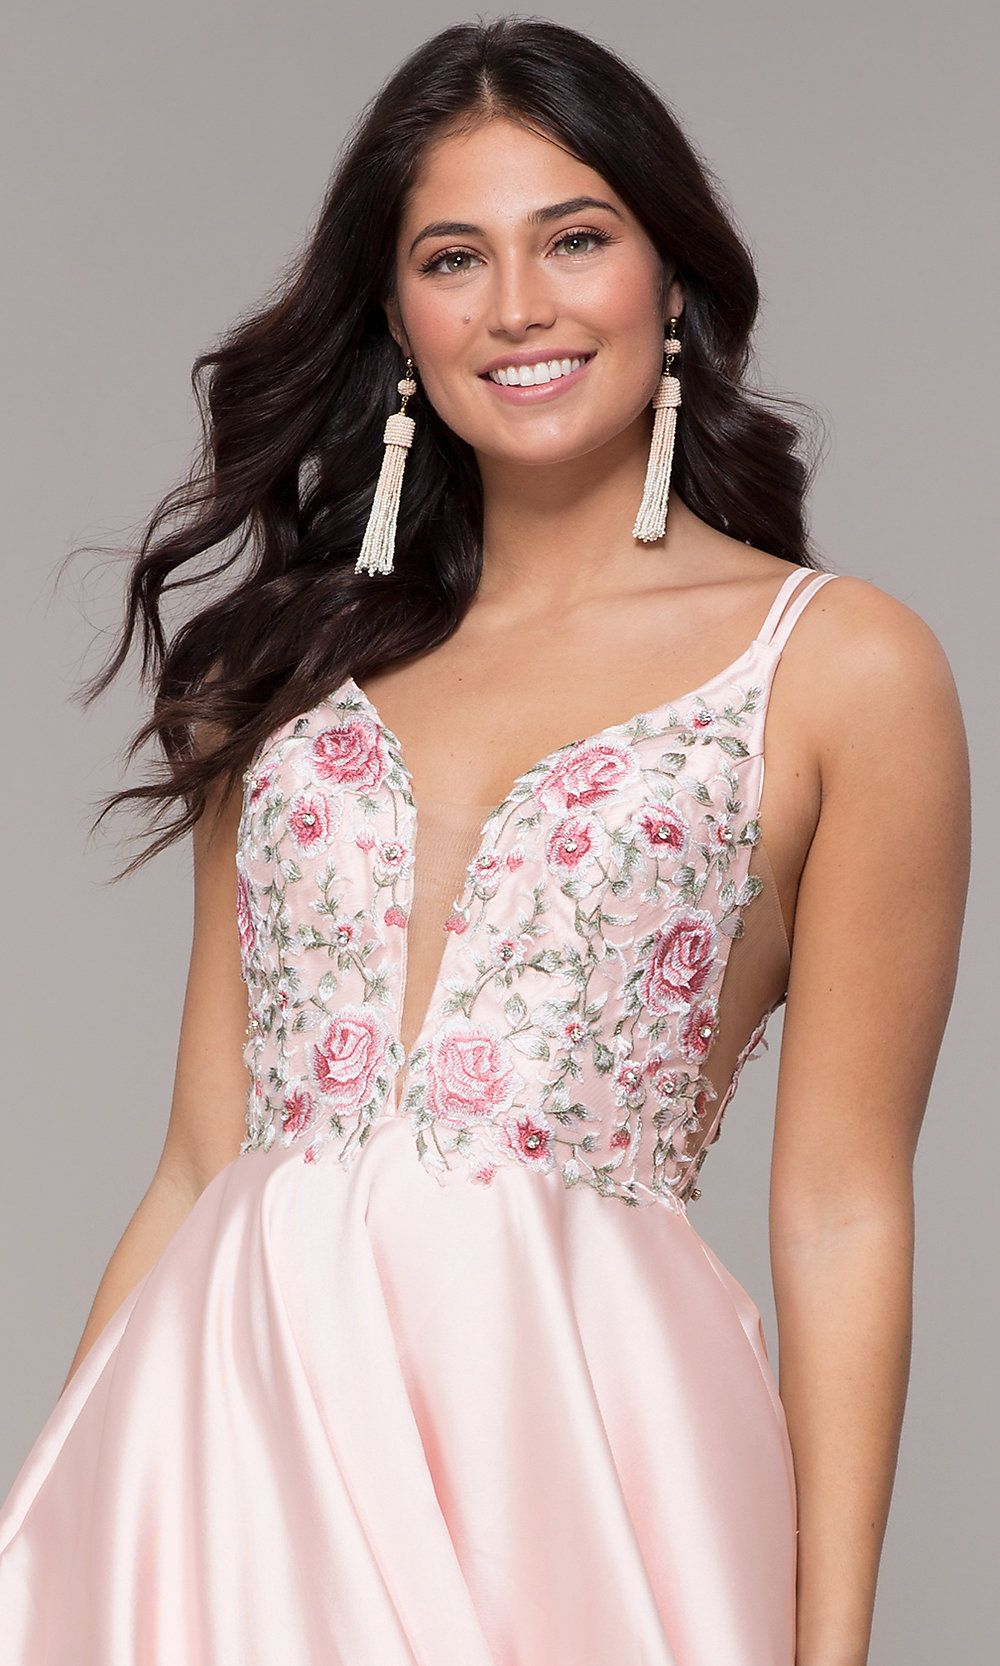 EmbroideredBodice Long ALine VNeck Prom Dress - Dresses, V neck prom dresses, Prom dresses, Pretty prom dresses, A line prom dresses, Plus size prom dresses - Look pretty as a princess wearing this embroideredbodice aline prom dress to prom 2020, pageant, or military ball  The bodice features lovely floral embroidery and an illusion deep vneckline, while the skirt on this long prom dress billows gracefully to floor length in a full aline shape  Thin double straps support the bodice, trace the shoulders, and spread across the open back of the formal dress for prom  For a beautiful and feminine look at an upcoming special occasion, wear this pretty embroideredbodice aline prom dress